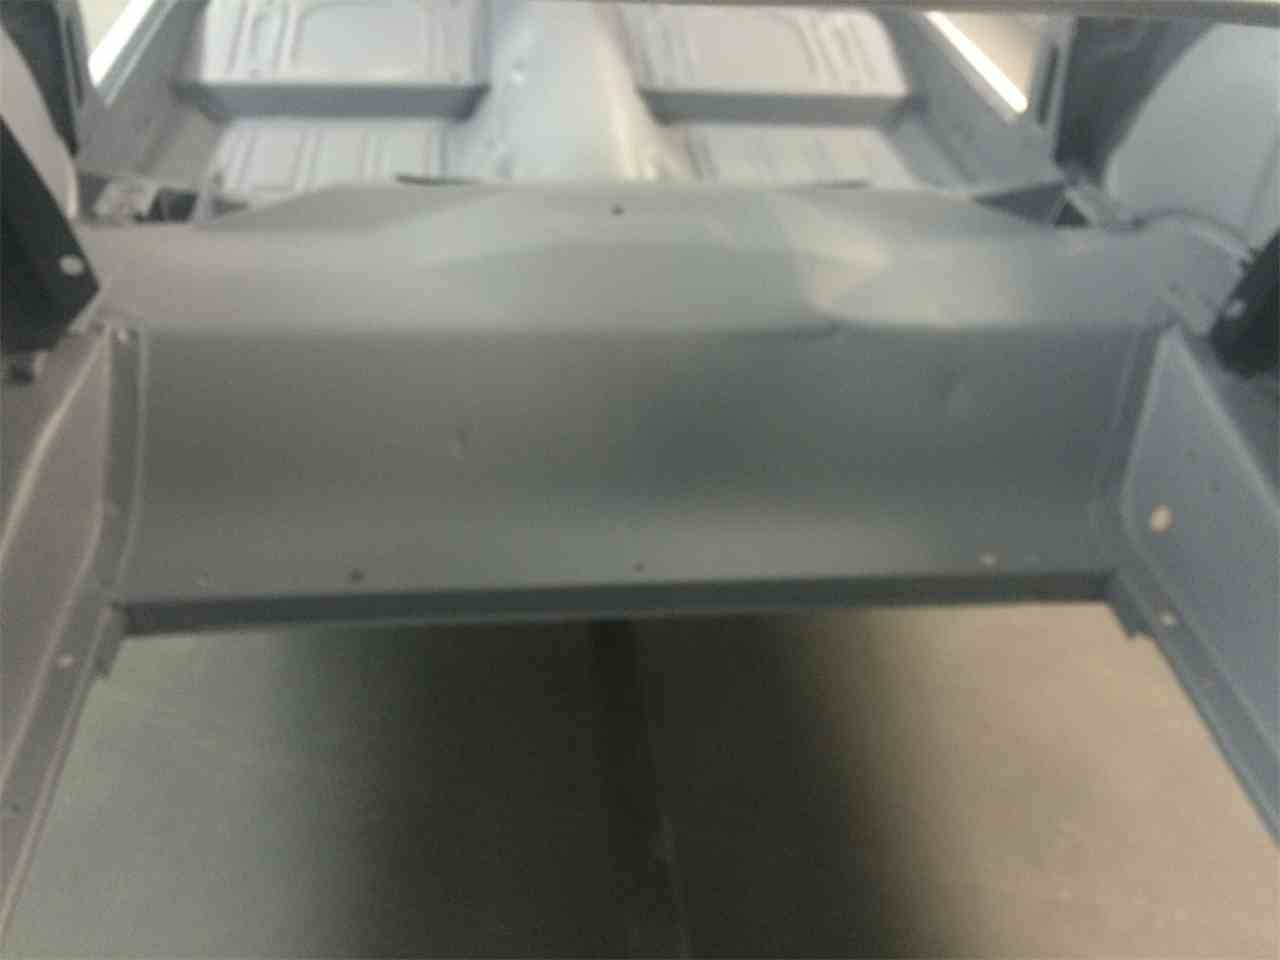 Large Picture of 1968 Mustang Restored Body Shells - $16,700.00 - JP9Q